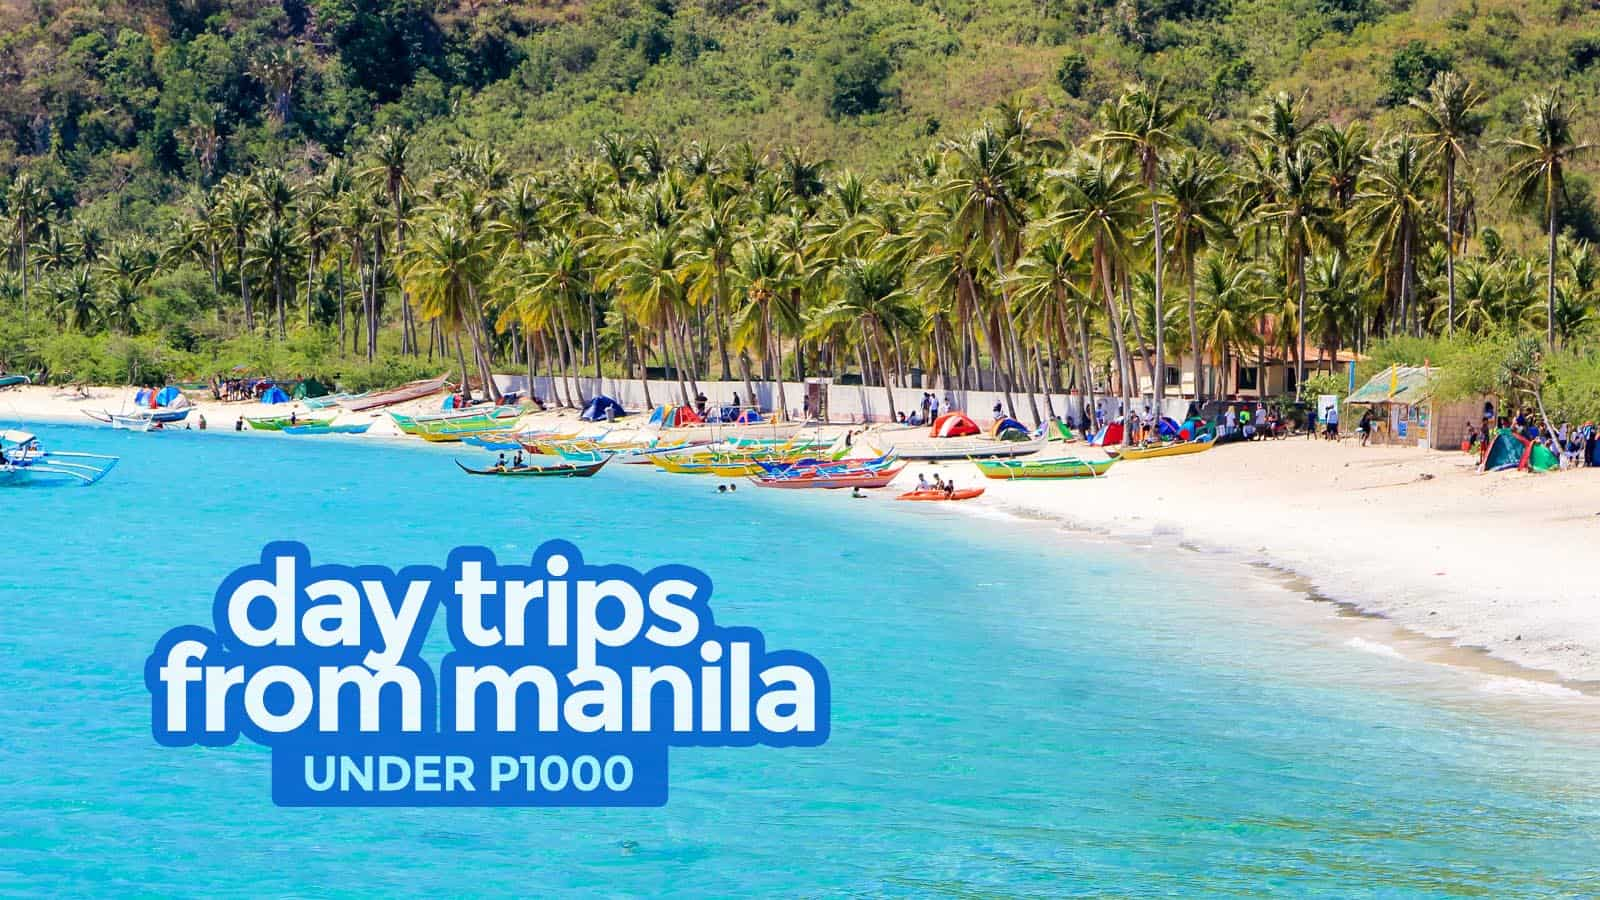 7 PLACES TO VISIT NEAR MANILA Under P1000